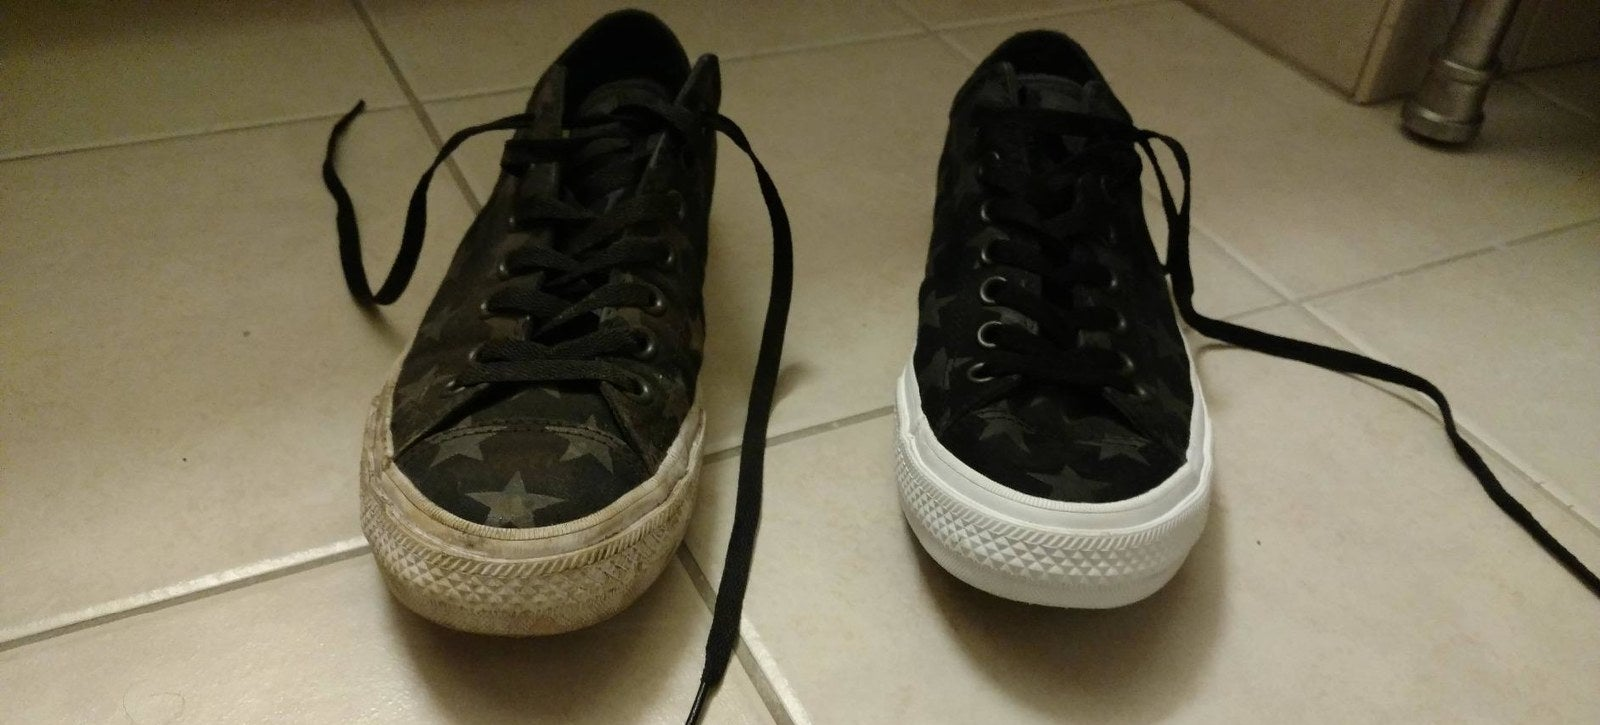 A reviewer's pair of sneakers: one with very dirty soles and sides and the other looking basically brand new white